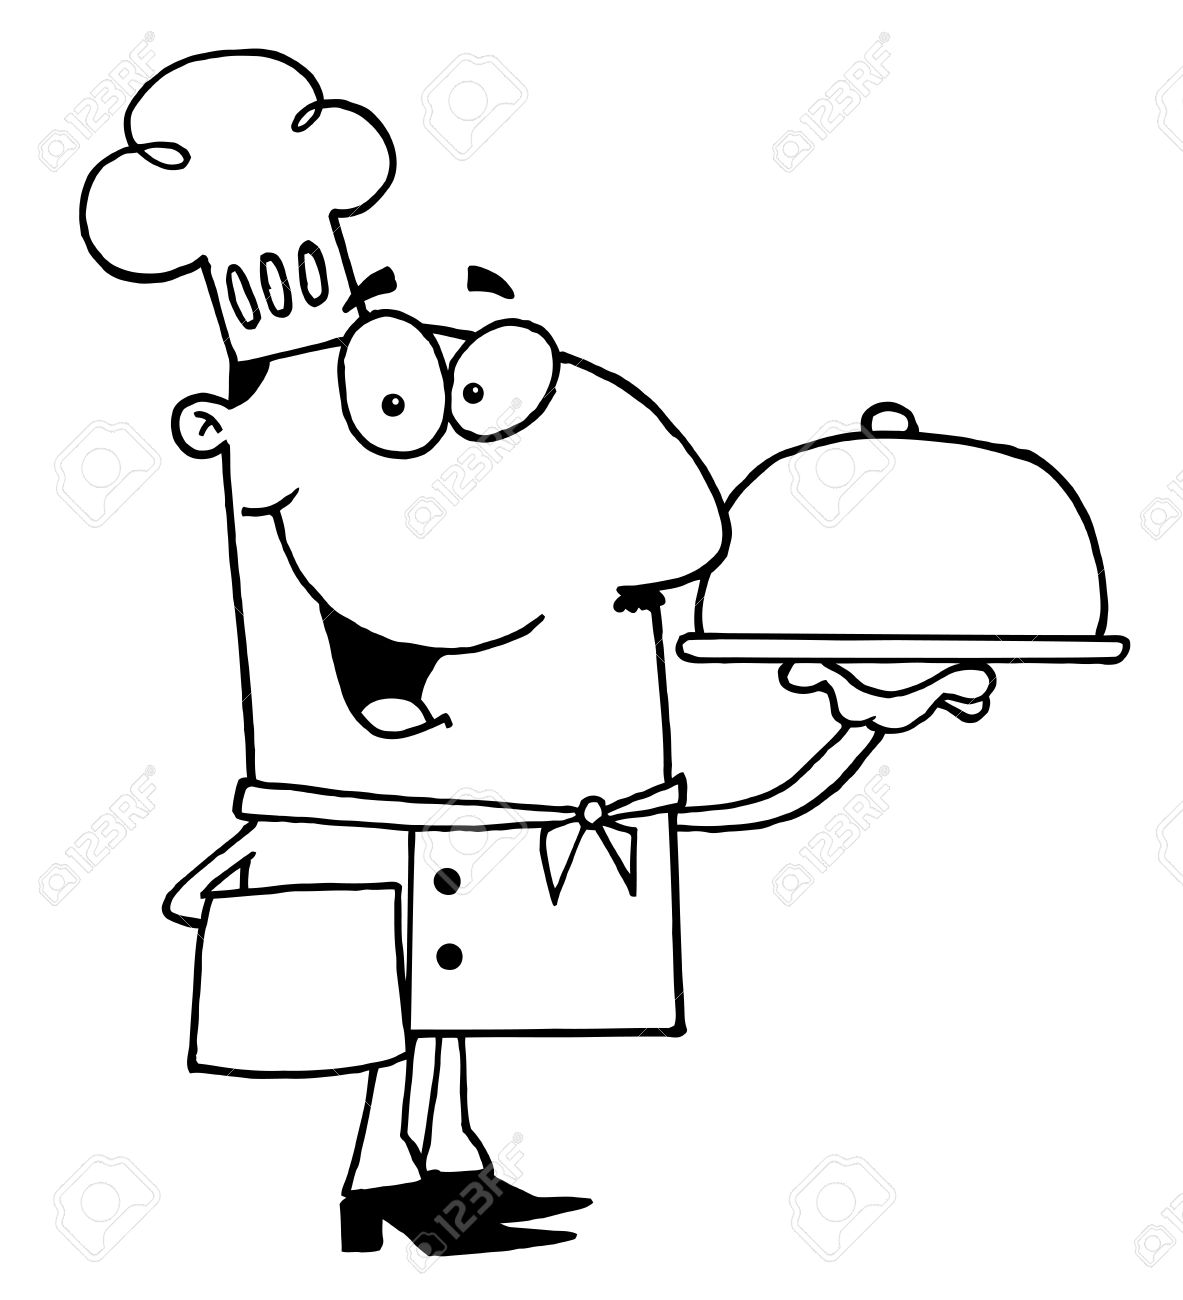 Chef clipart black and white 8 » Clipart Station.